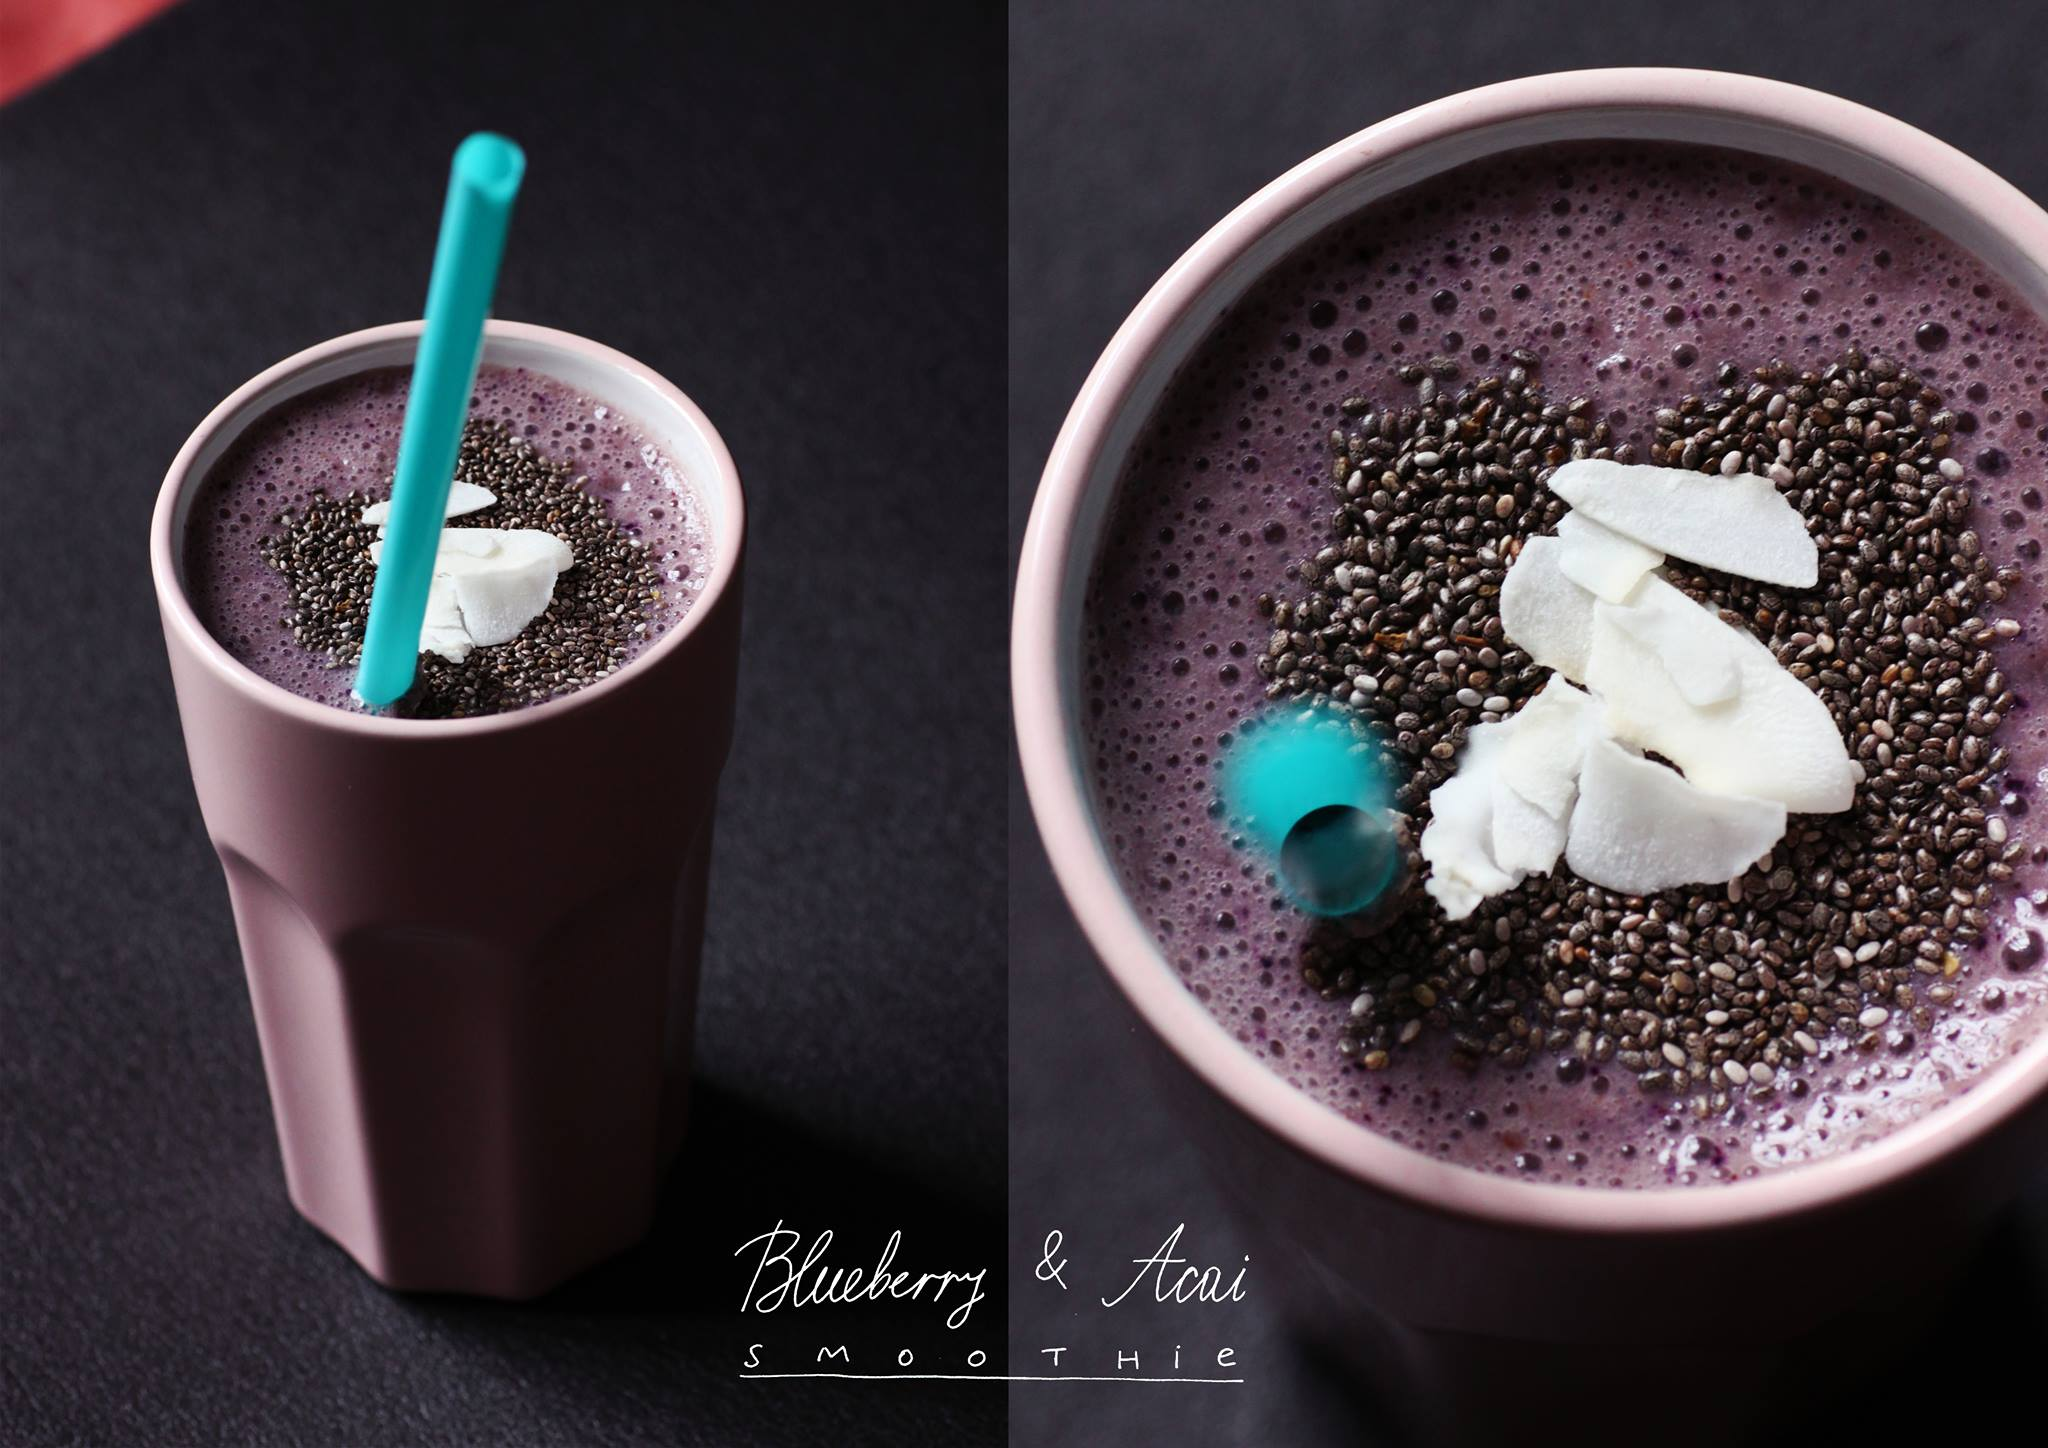 ohnorachio.com / Blueberry & Acai Smoothie by Dessy Baeva